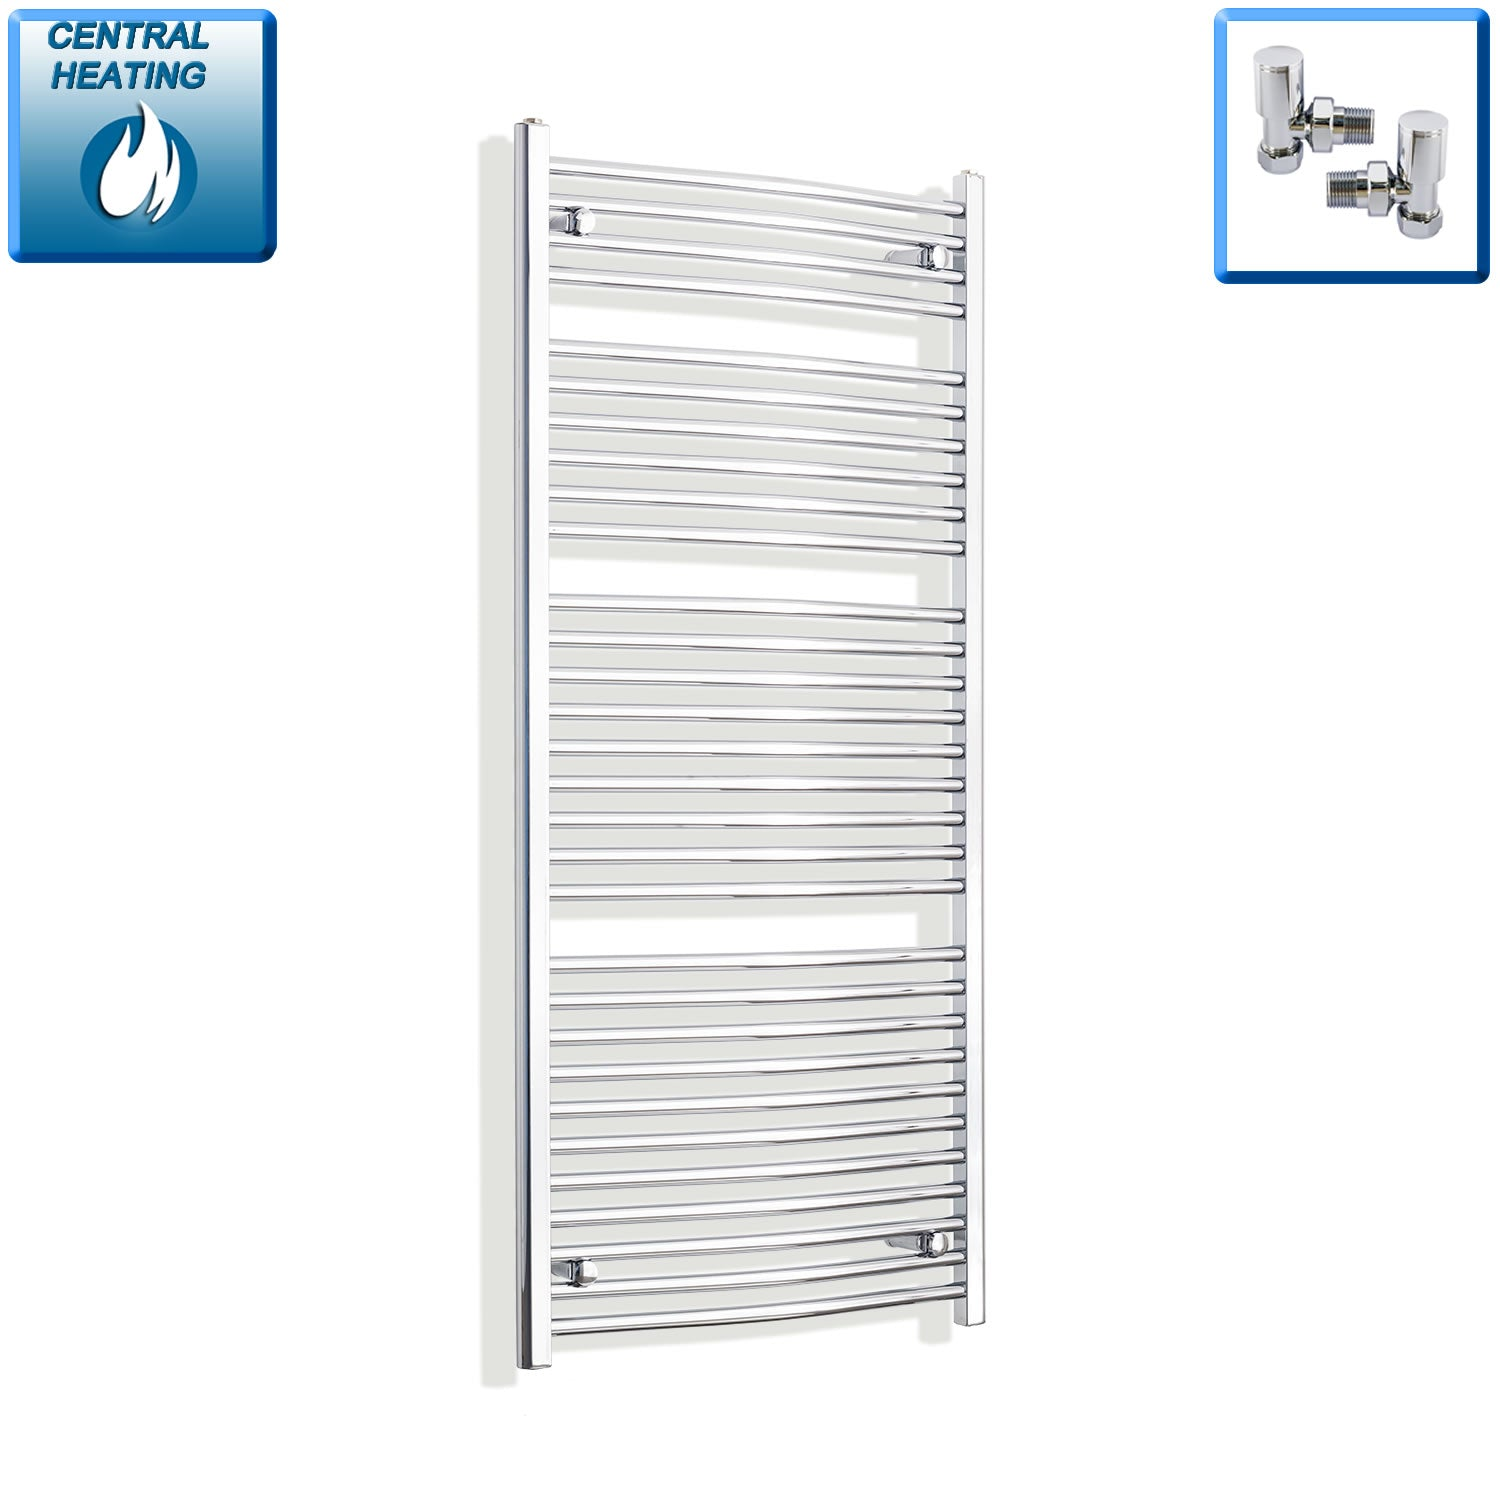 750mm x 1500mm High Curved Chrome Towel Rail Radiator With Angled Valve